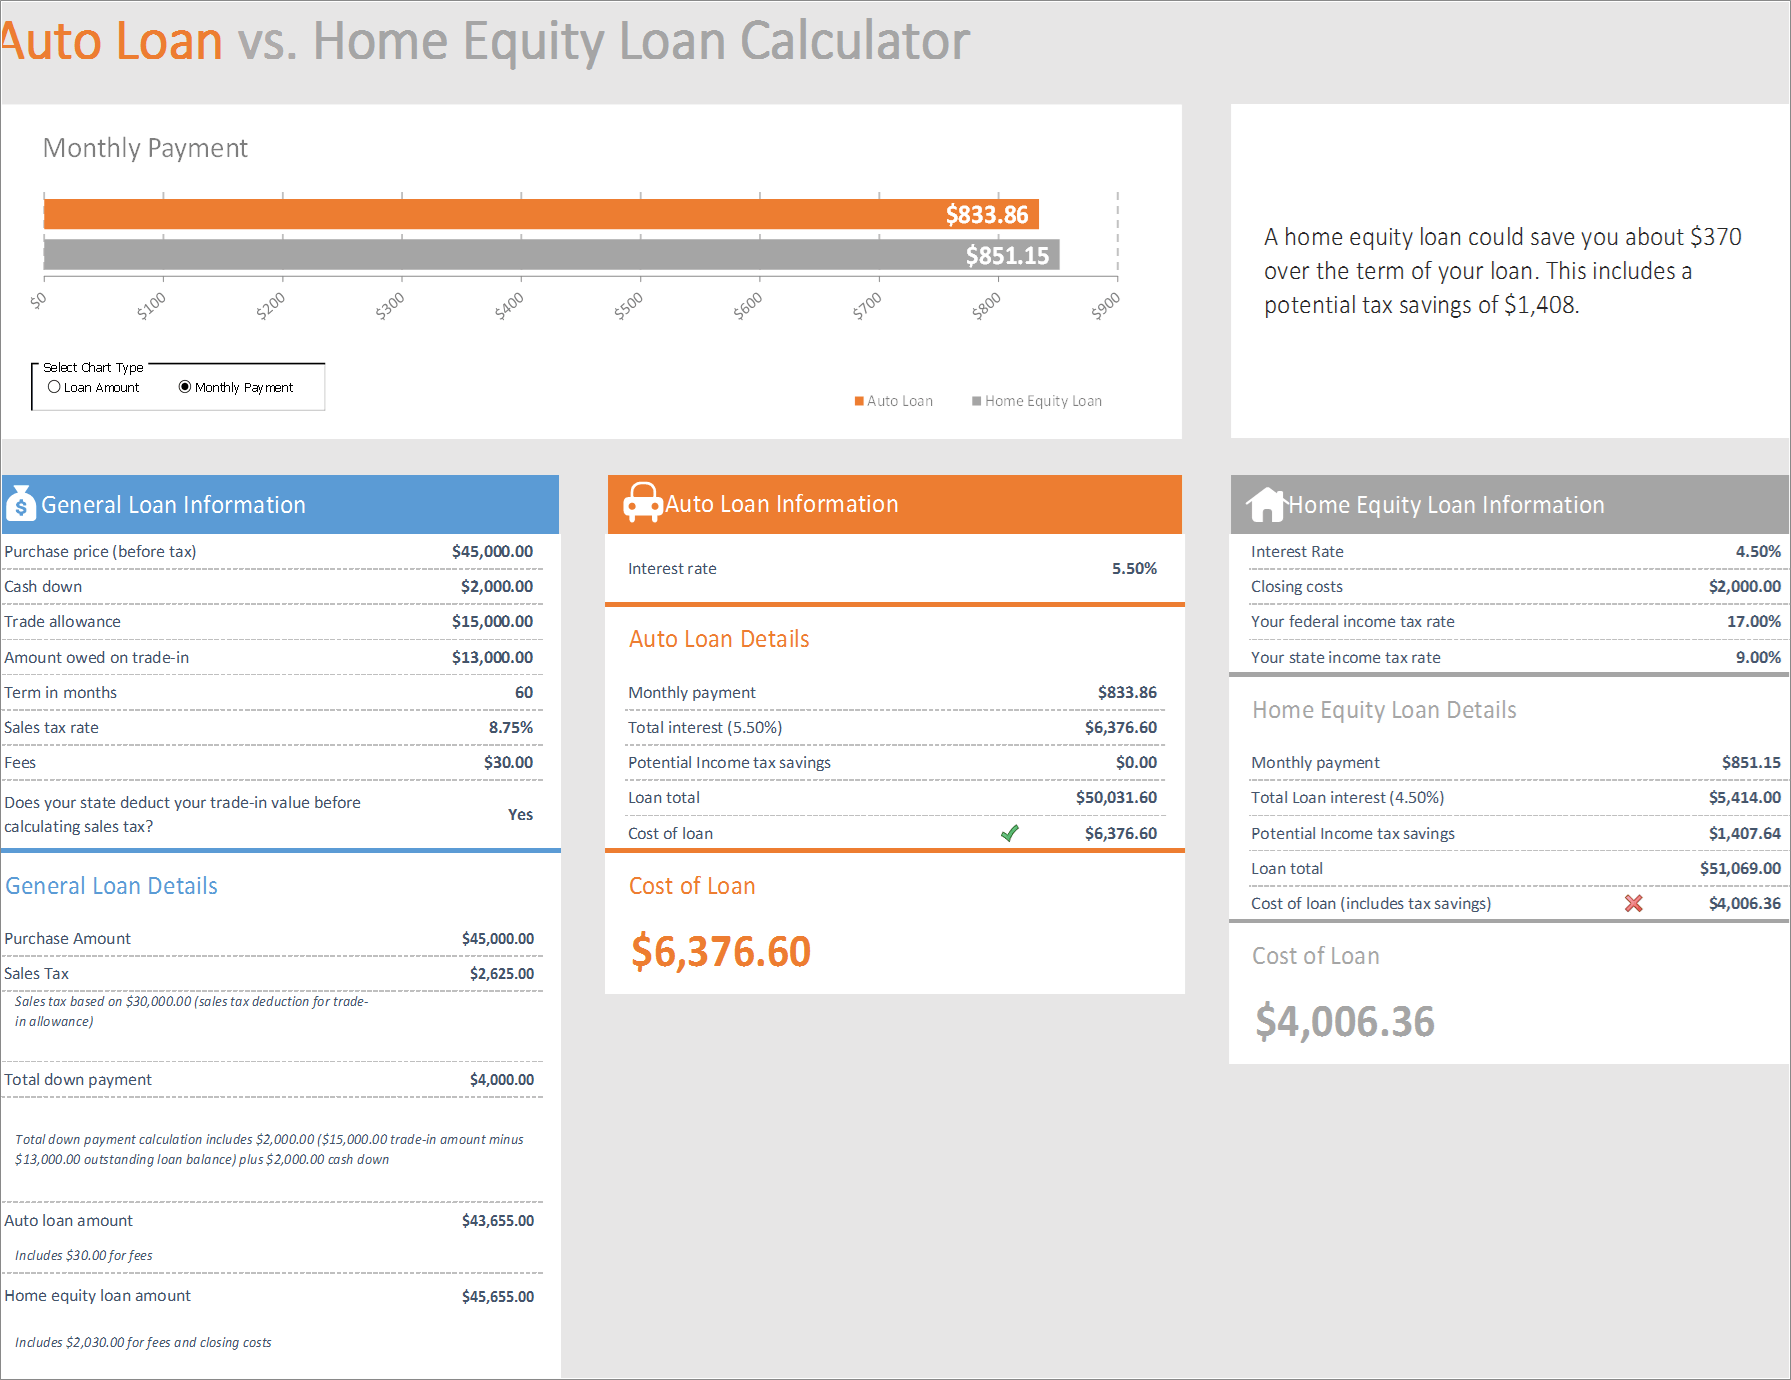 Auto Loan Vs Home Loan Calculator Excel  Automating Work